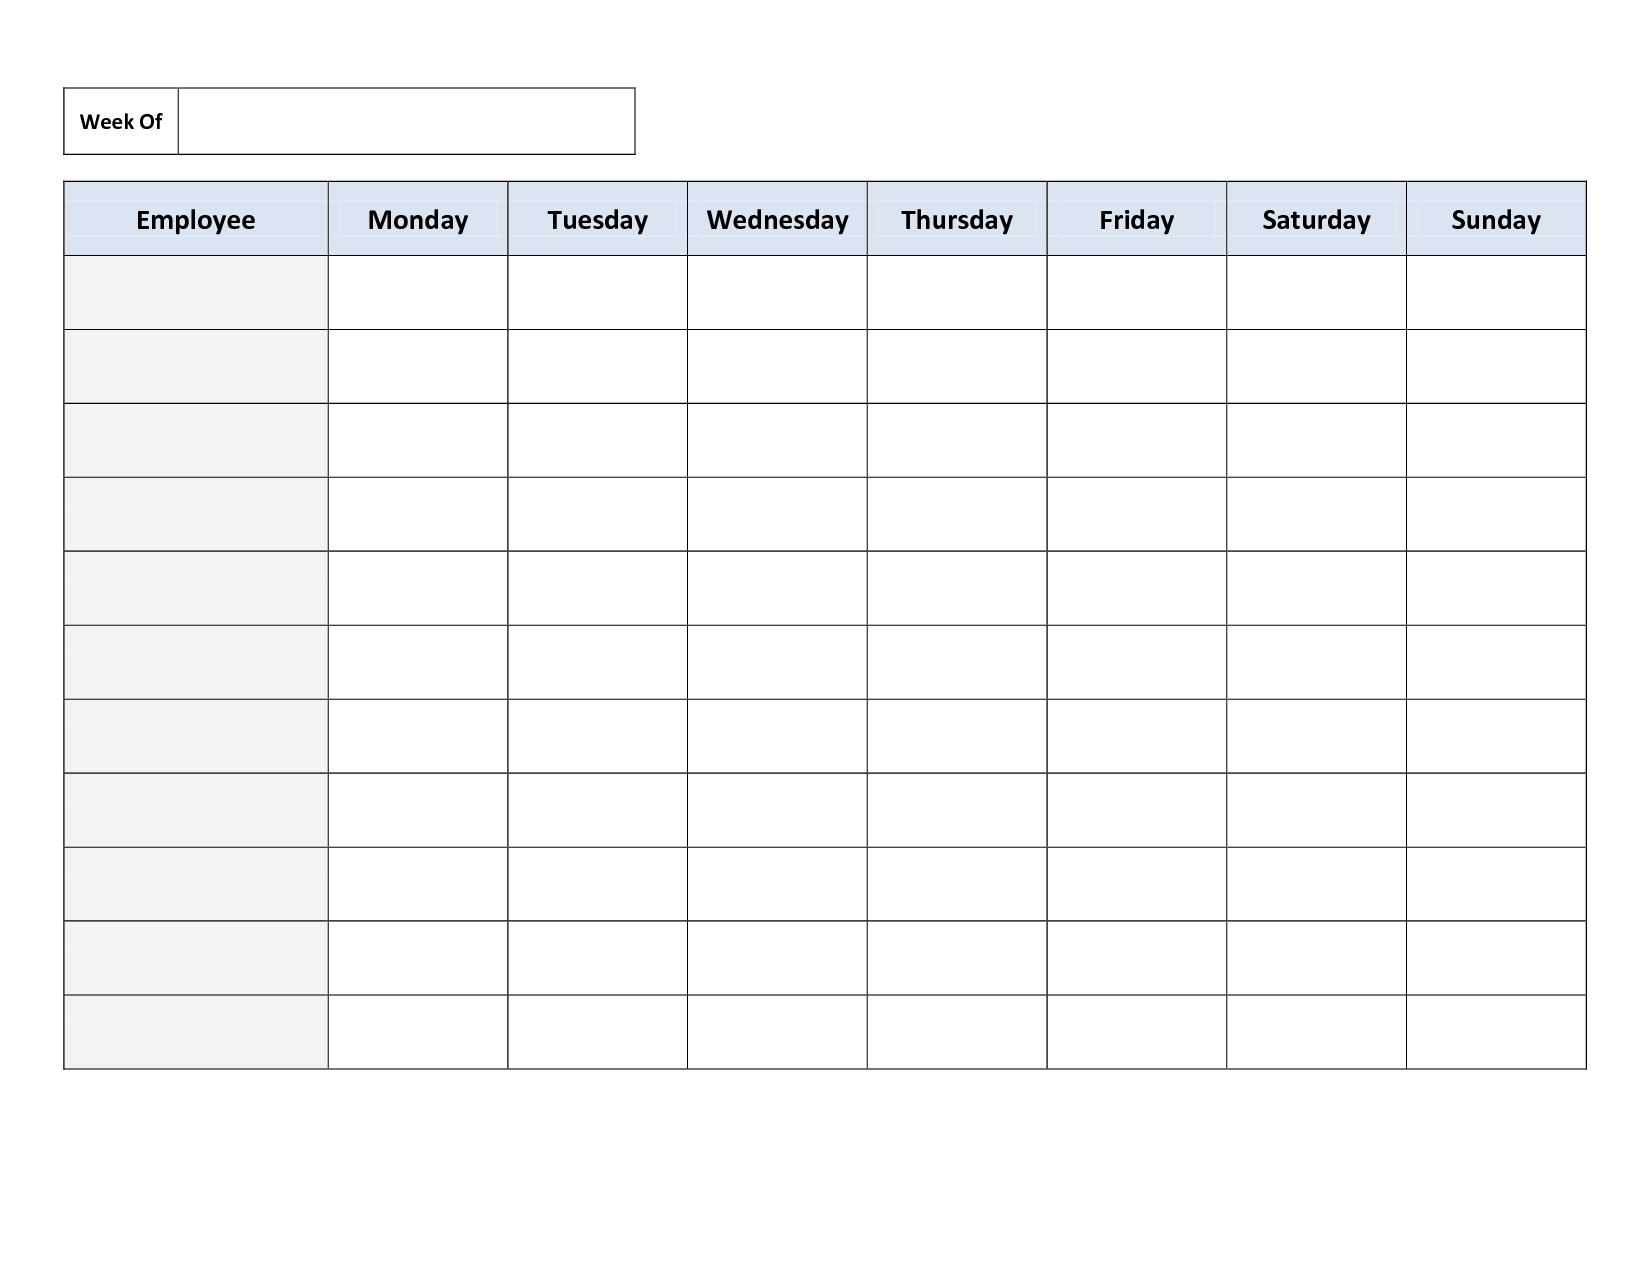 Monday To Sunday Calendar Template Writing Practice Weekly Schedule Monday To Sunday